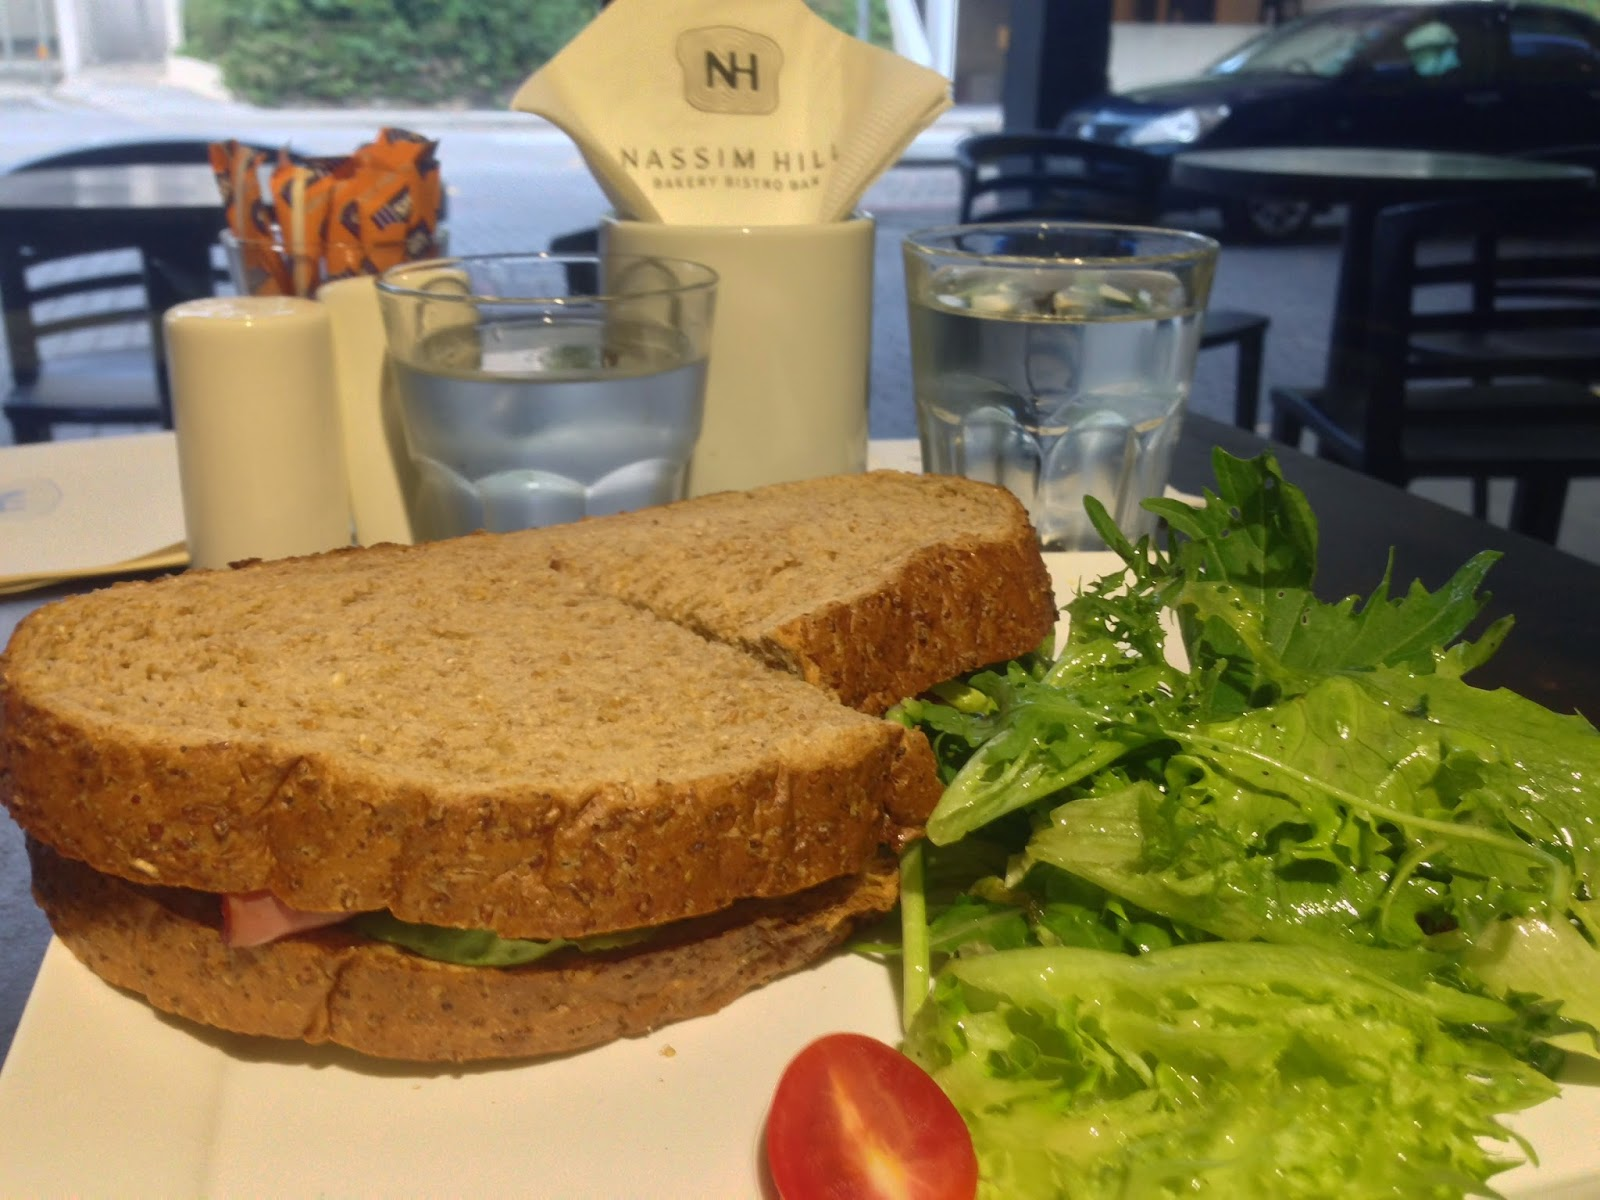 Ham & Cheese Sandwich with Honey Baked Ham, Emmental, Lettuce and Tomato on Asahi Kuronama Beer Bread